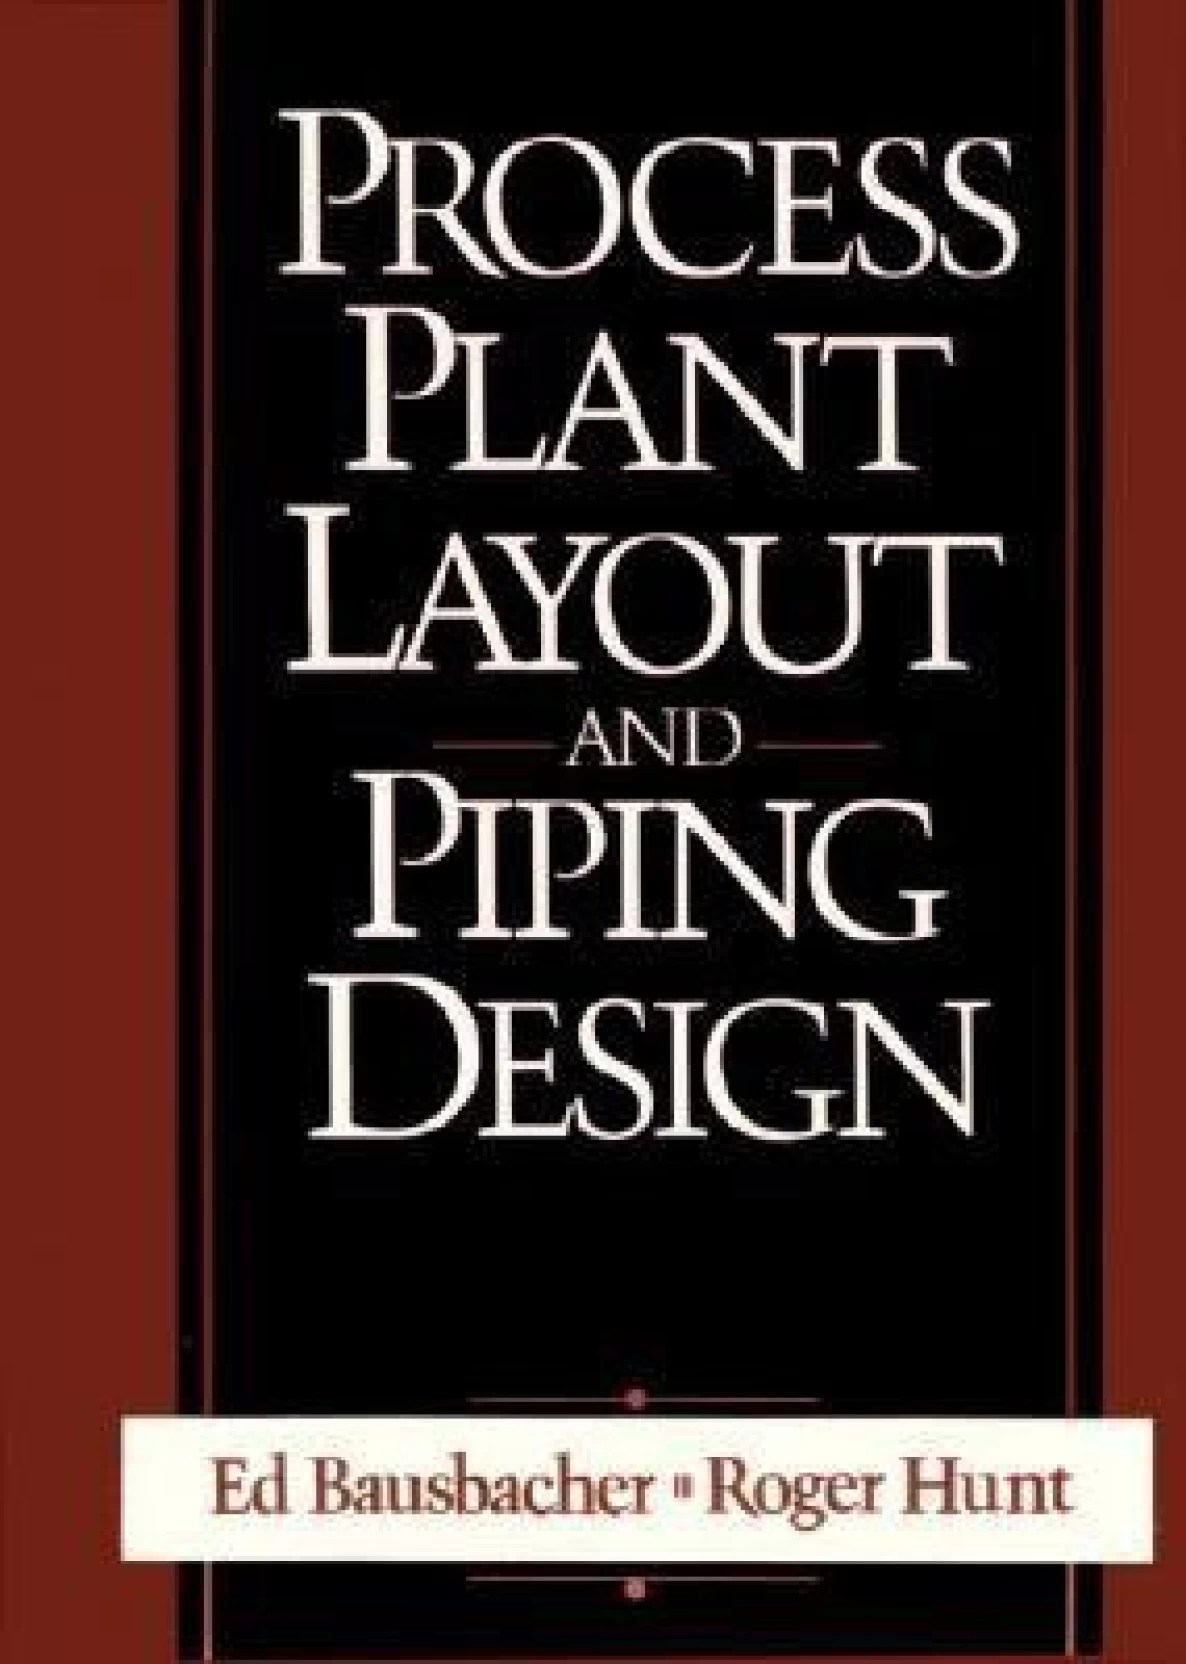 hight resolution of process plant layout and piping design english paperback roger hunt ed bausbacher